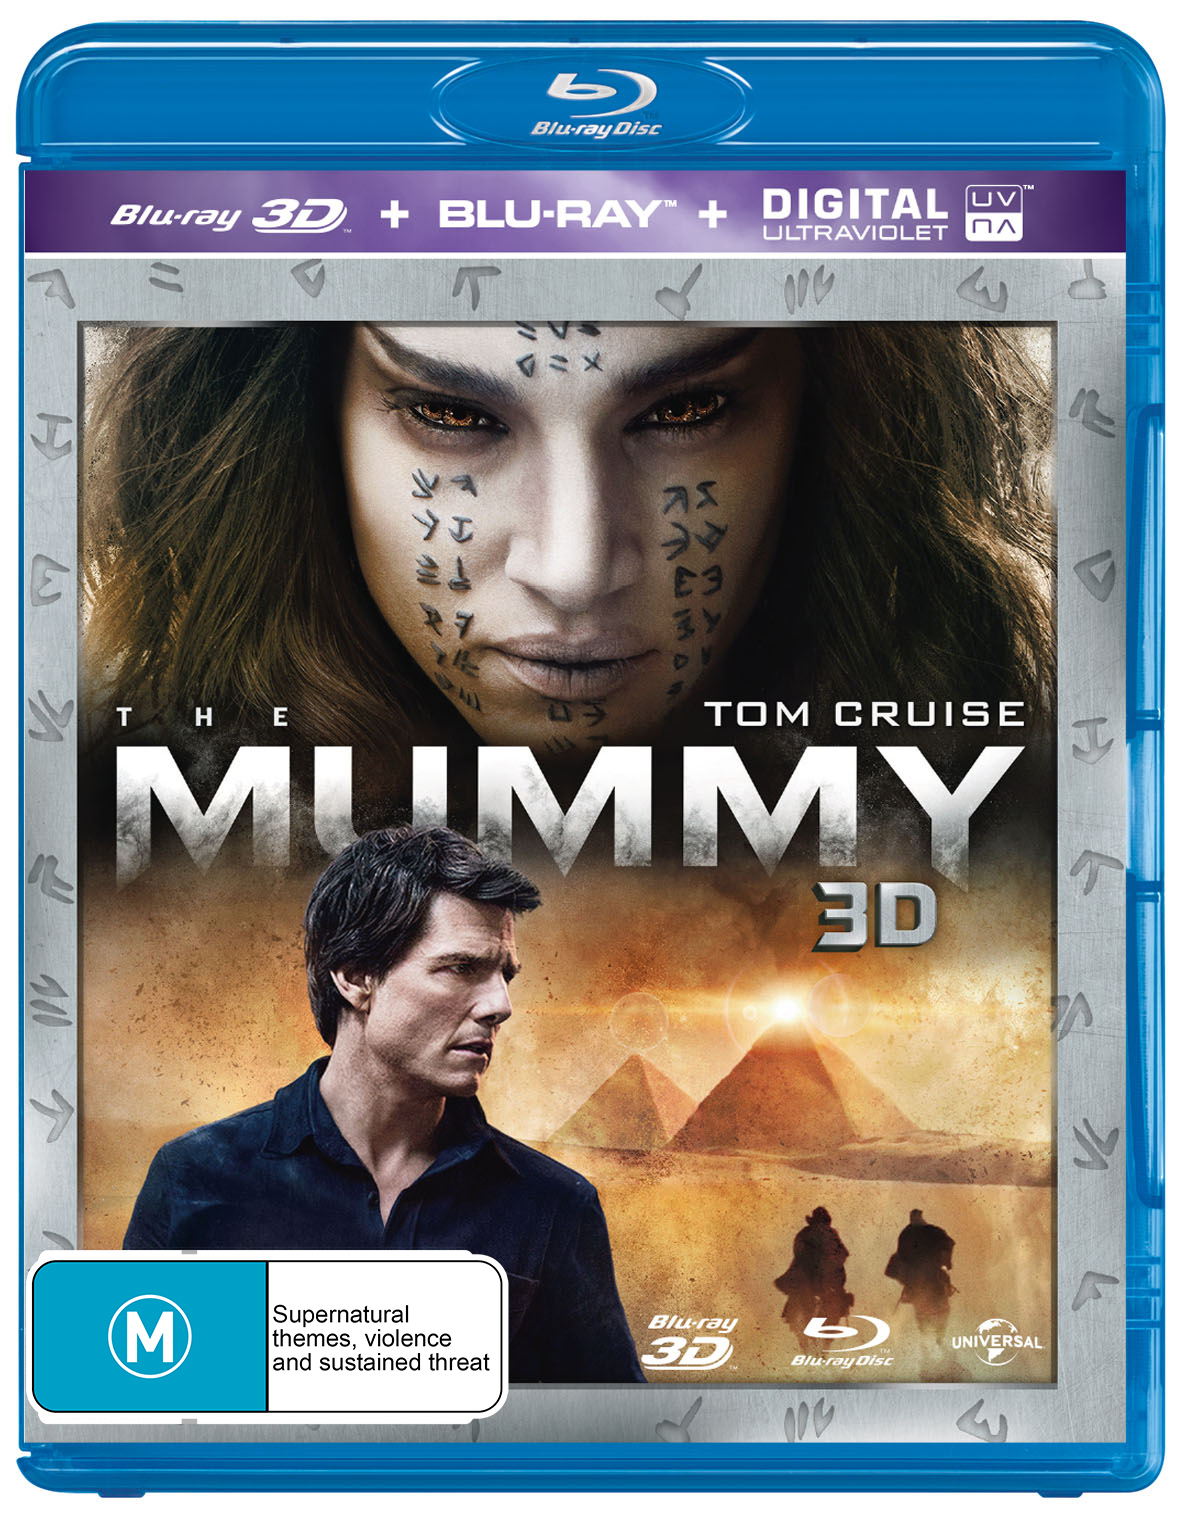 The Mummy (2 Disc Set) (2017) on Blu-ray, 3D Blu-ray image